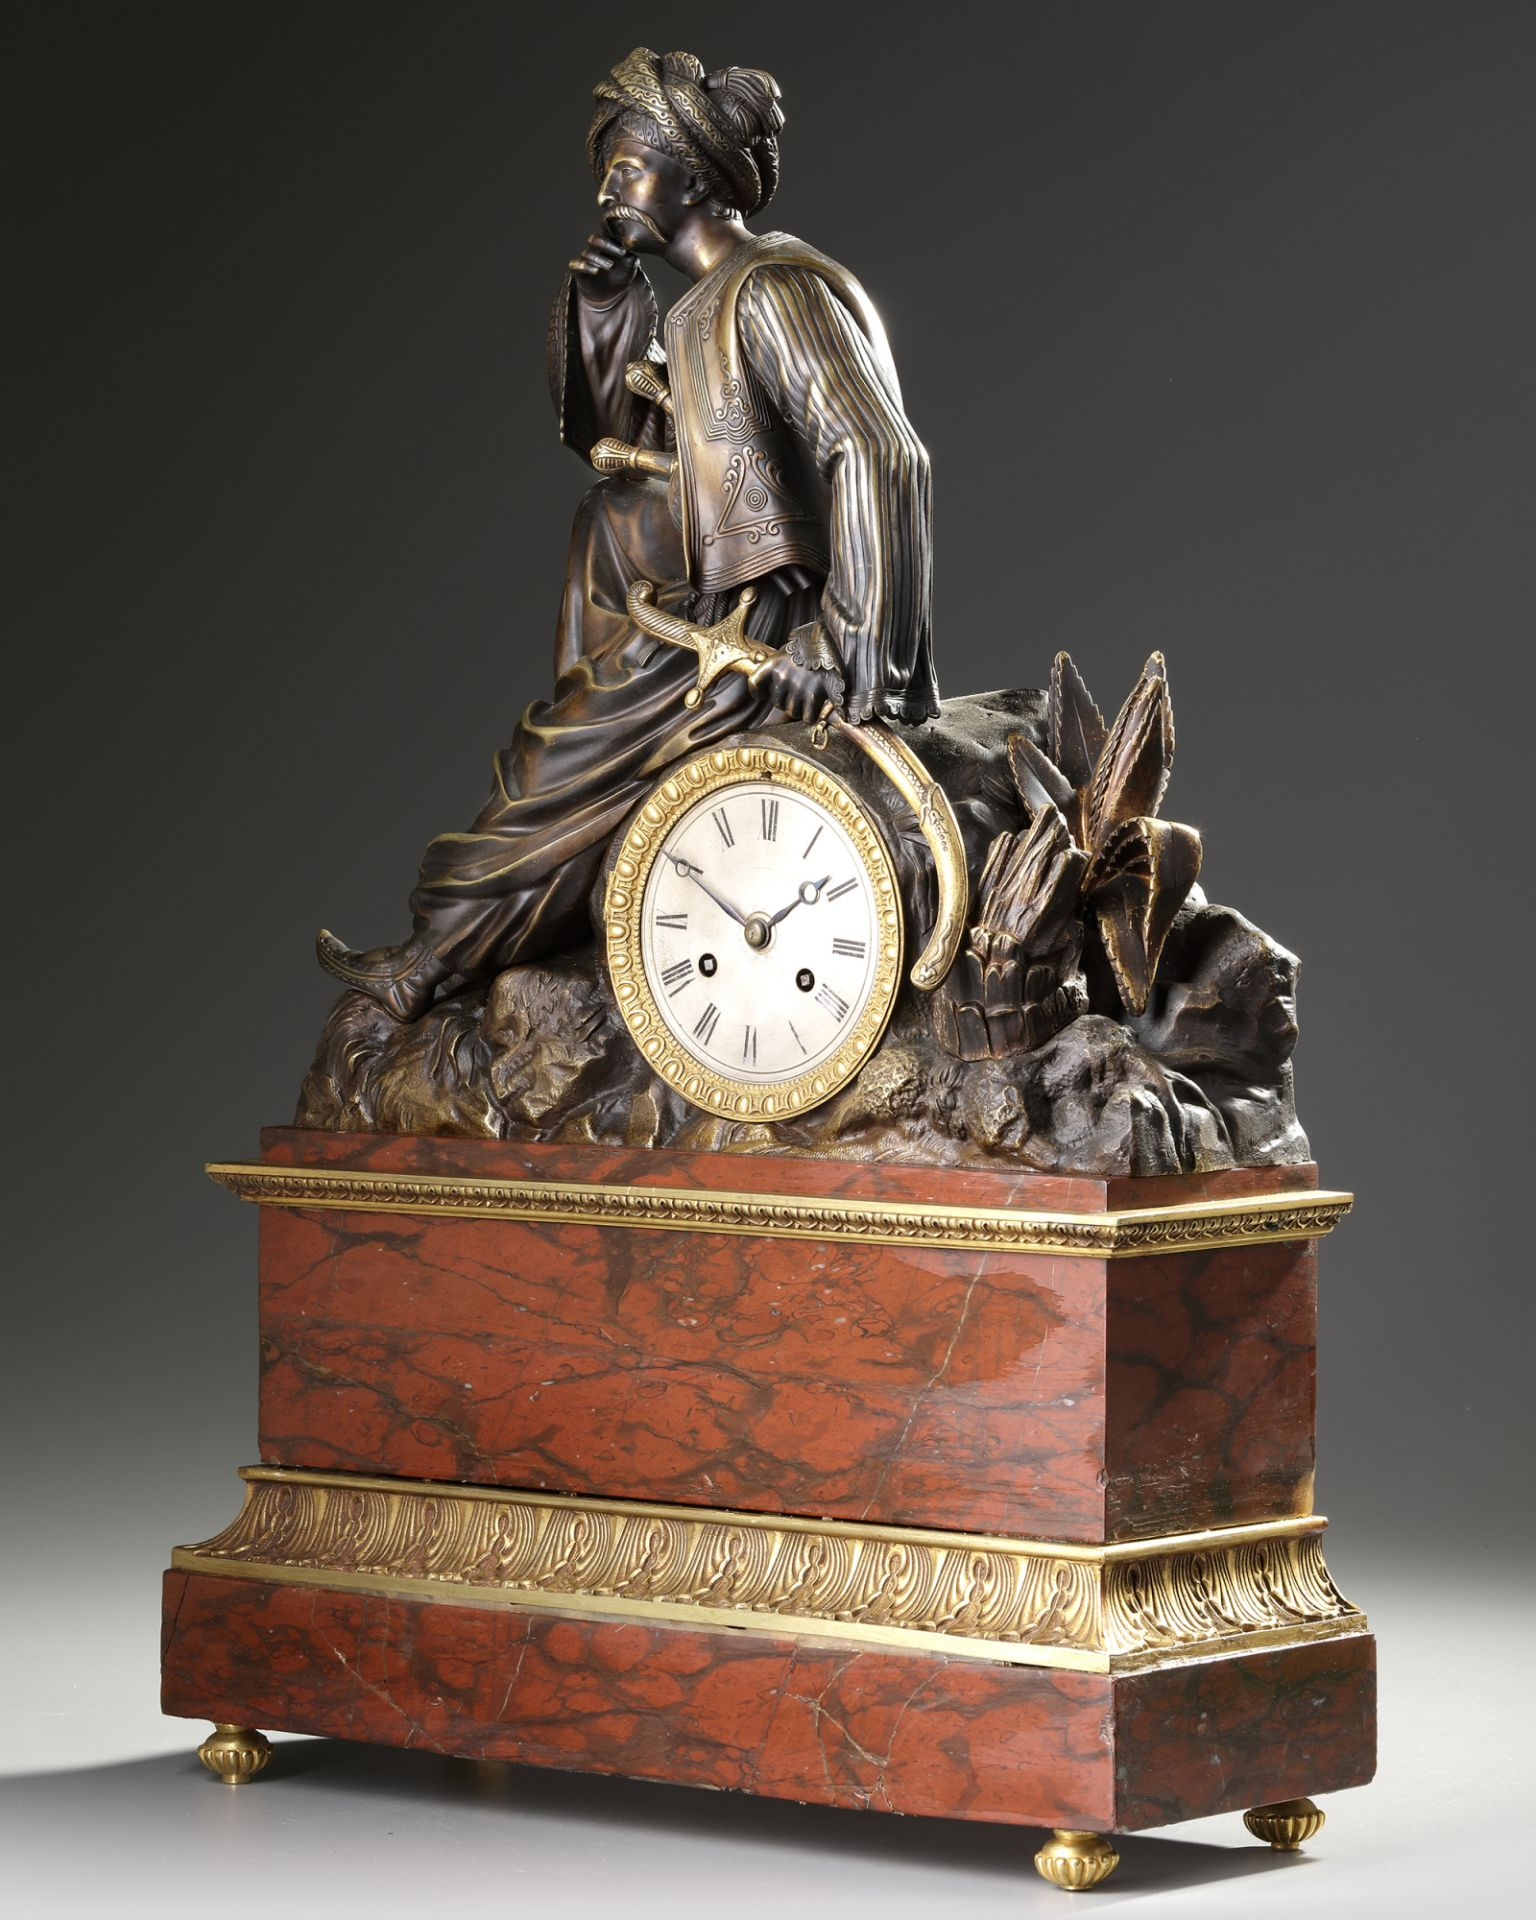 AN ORIENTALIST CLOCK, FRANCE, 19TH CENTURY - Image 2 of 5